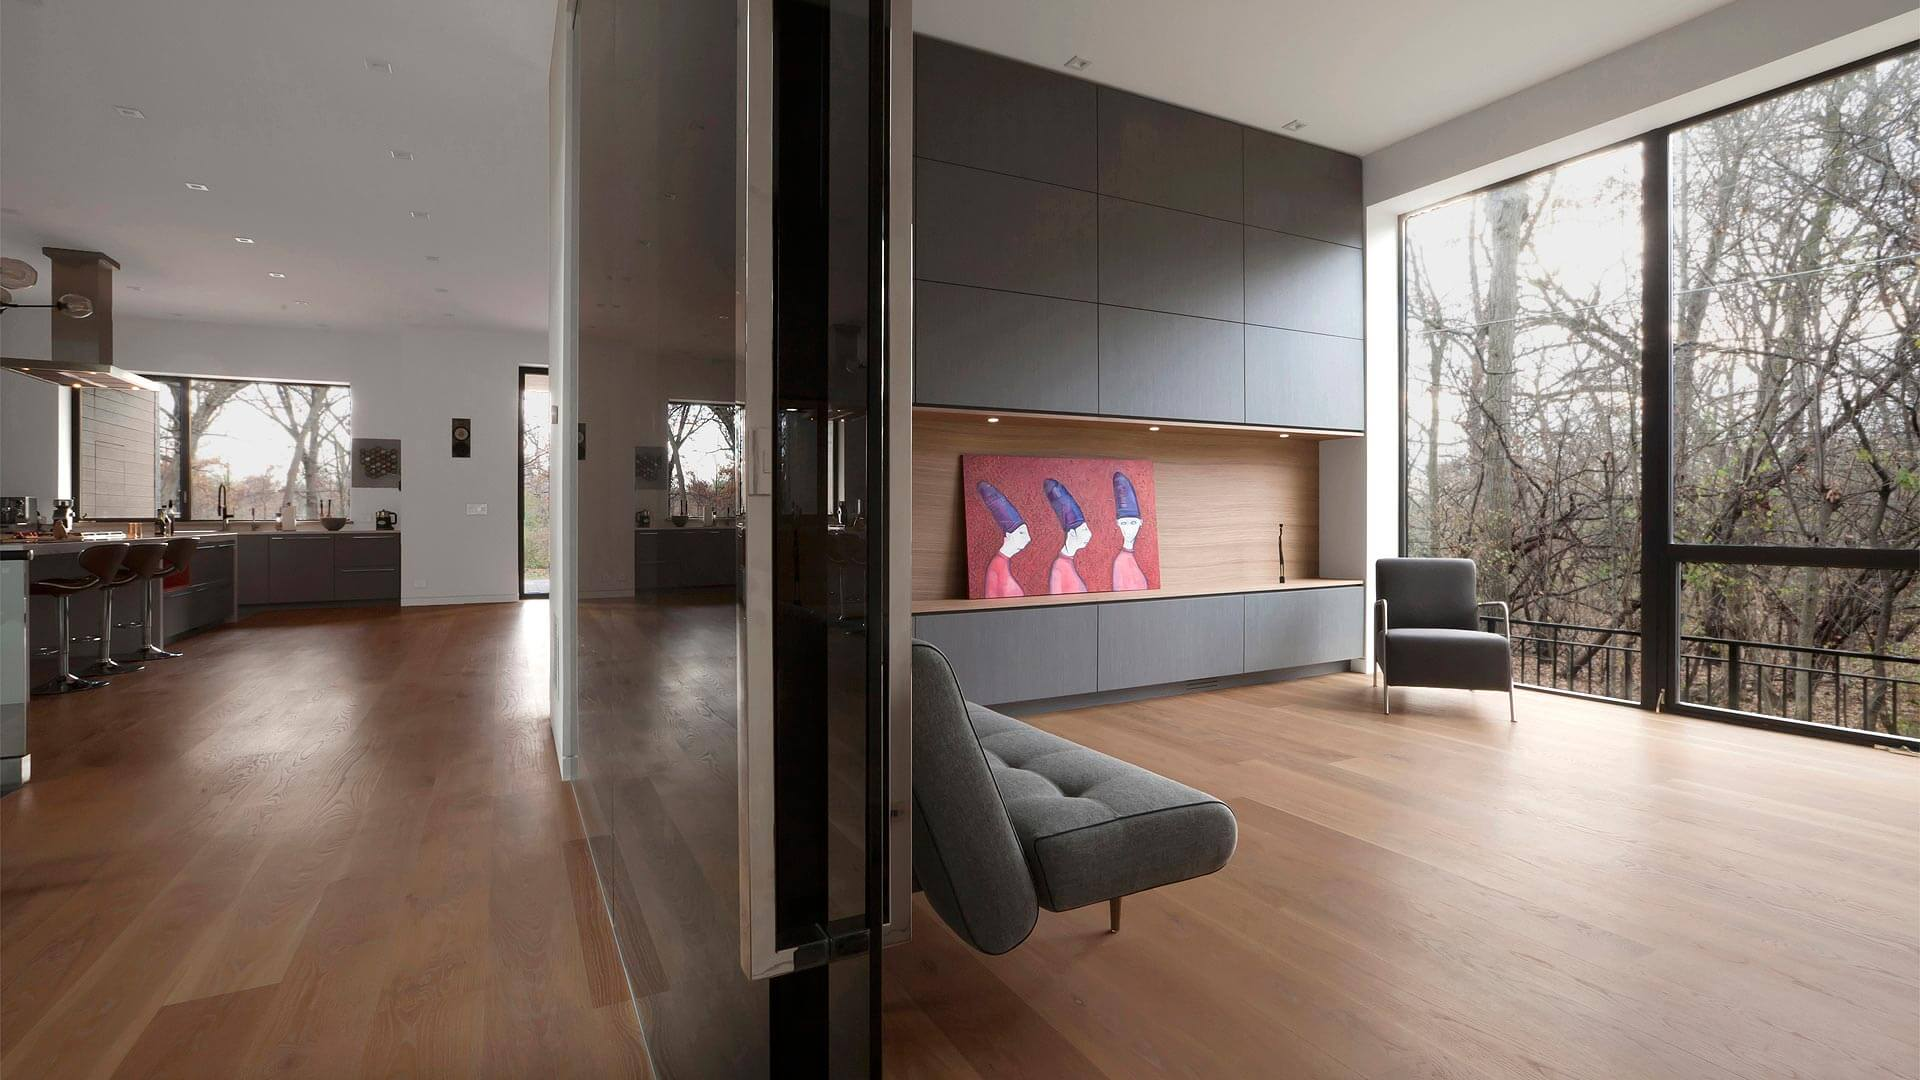 Playroom at entry hall is defined by modern storage wall and full glass walls inside and out - Minimalist Modern - Indian Head Park - Chicago, Illinois - HAUS | Architecture For Modern Lifestyles, Christopher Short, Indianapolis Architect with Joe Trojanowski